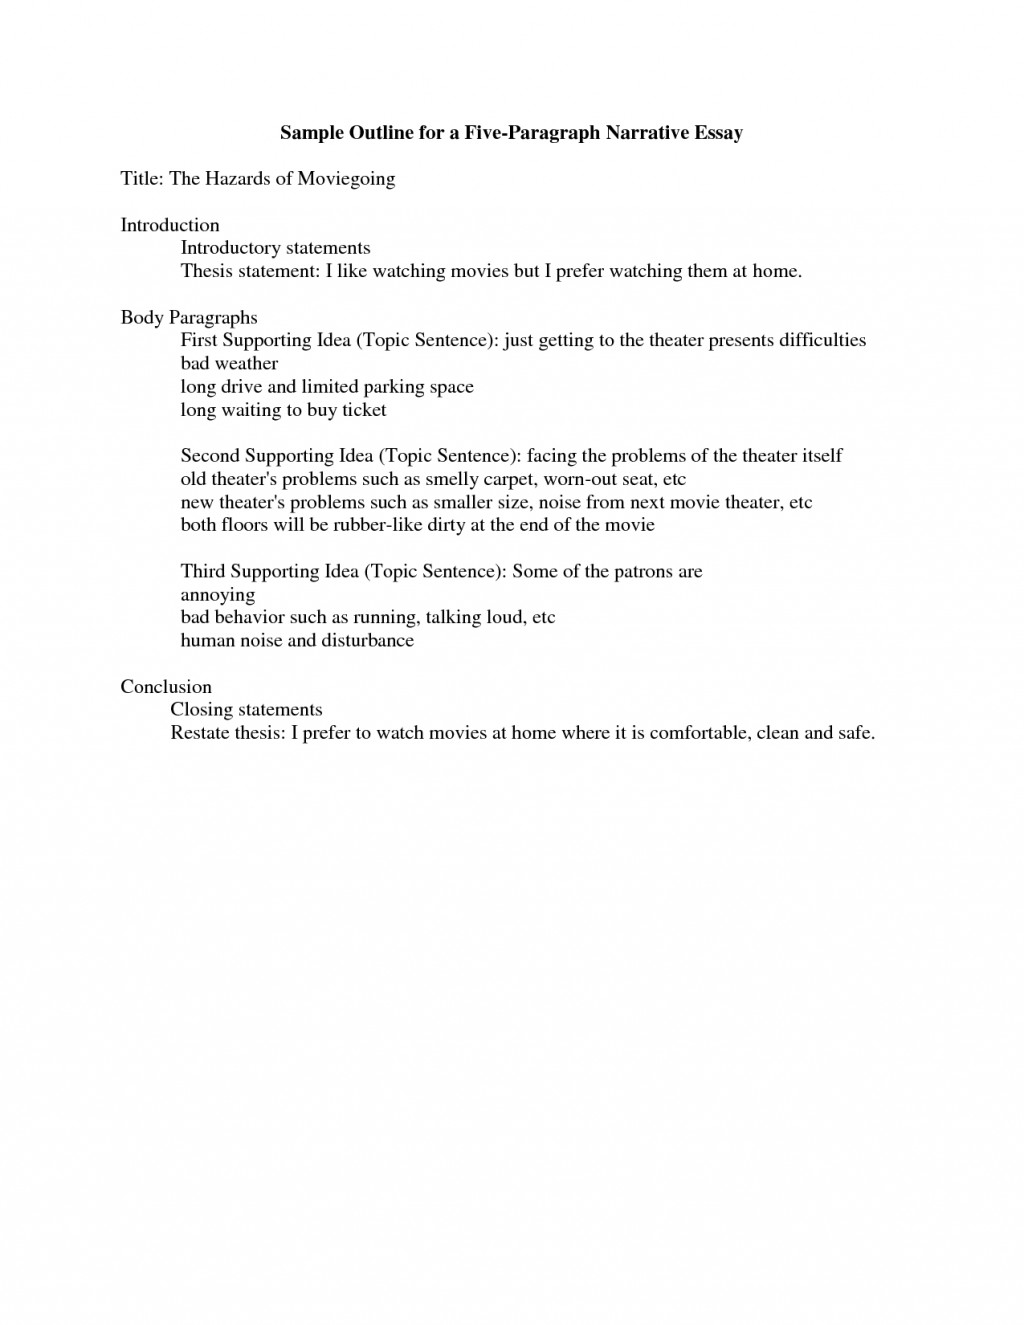 005 College Level Narrative Essay Outline Marvelous Example Template Large